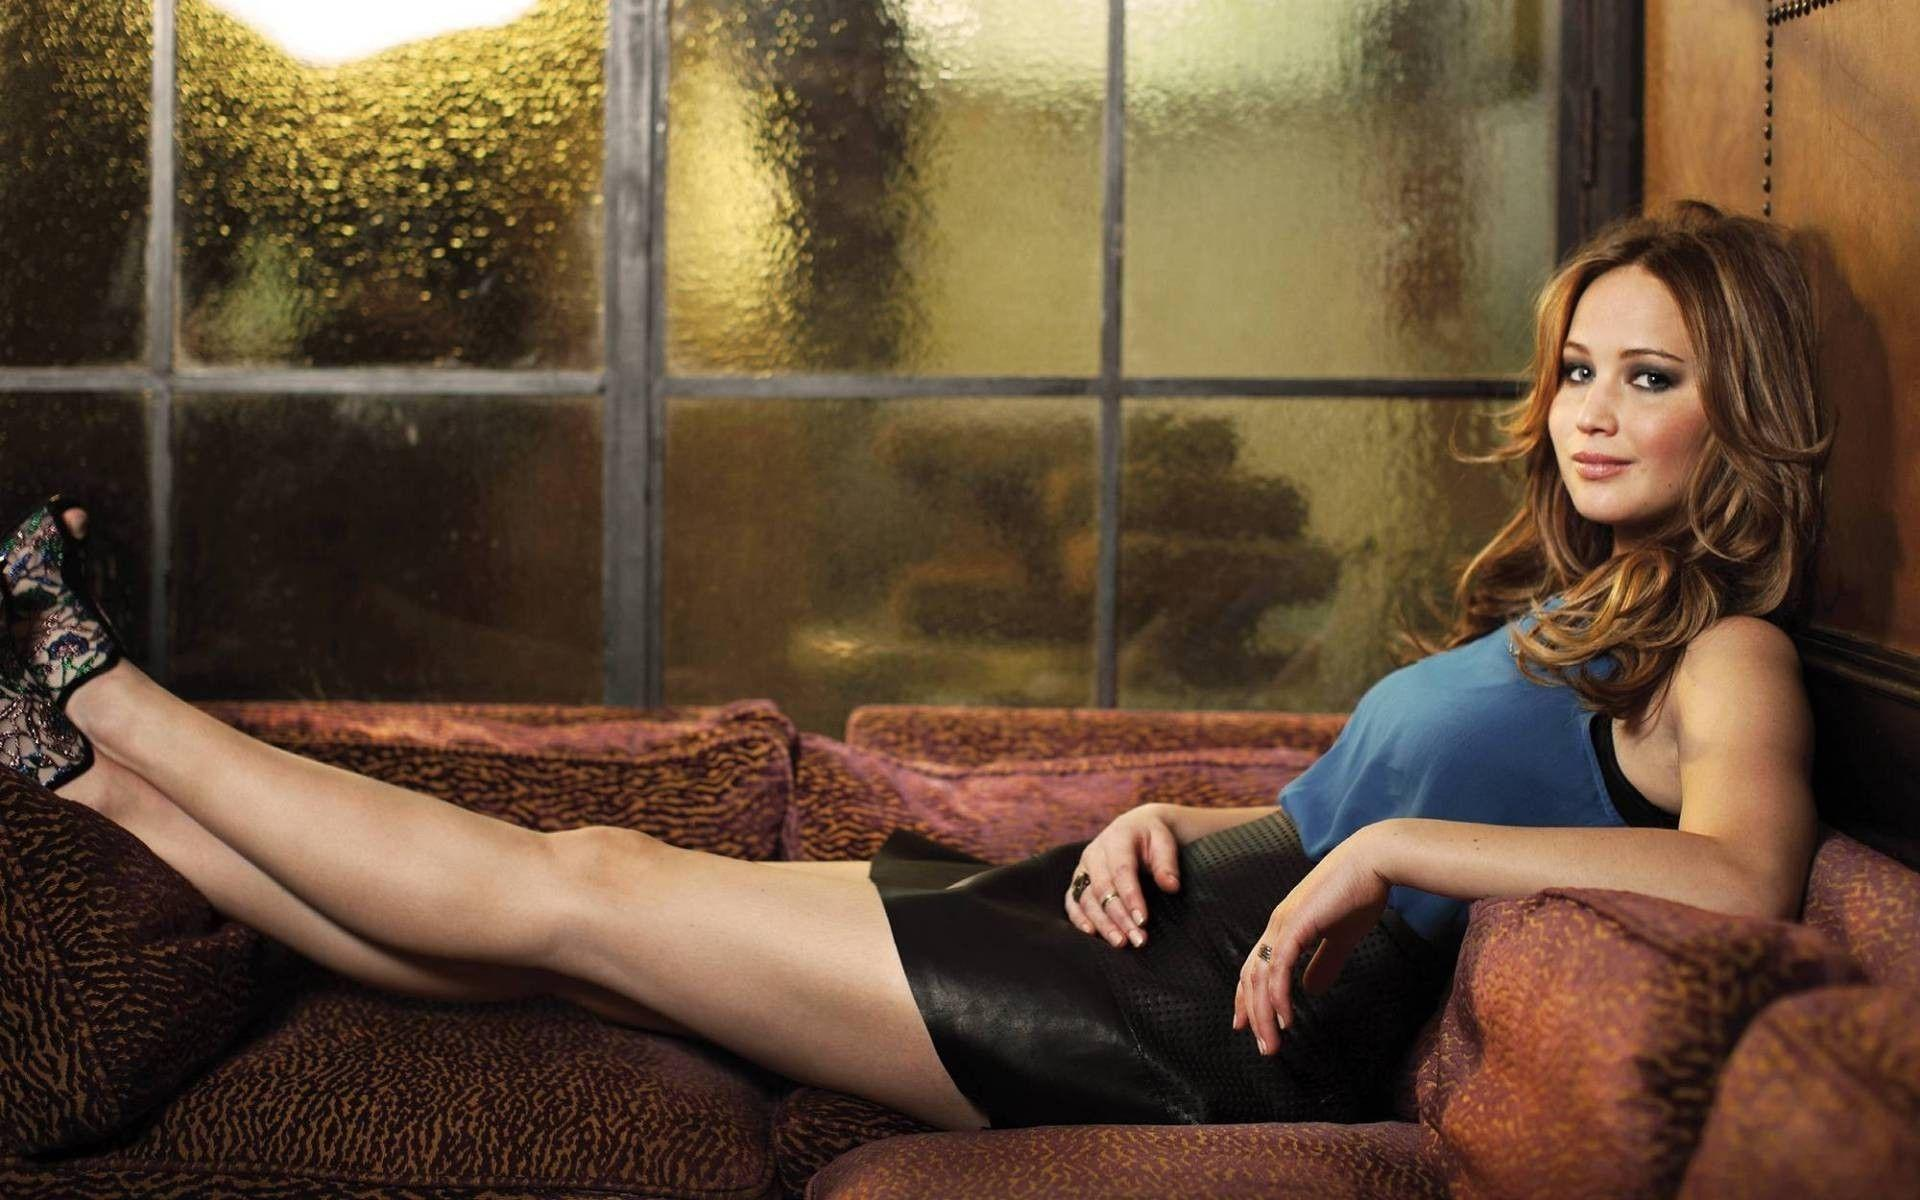 Jennifer Lawrence Images and HD Wallpapers Free Download - Hd ...